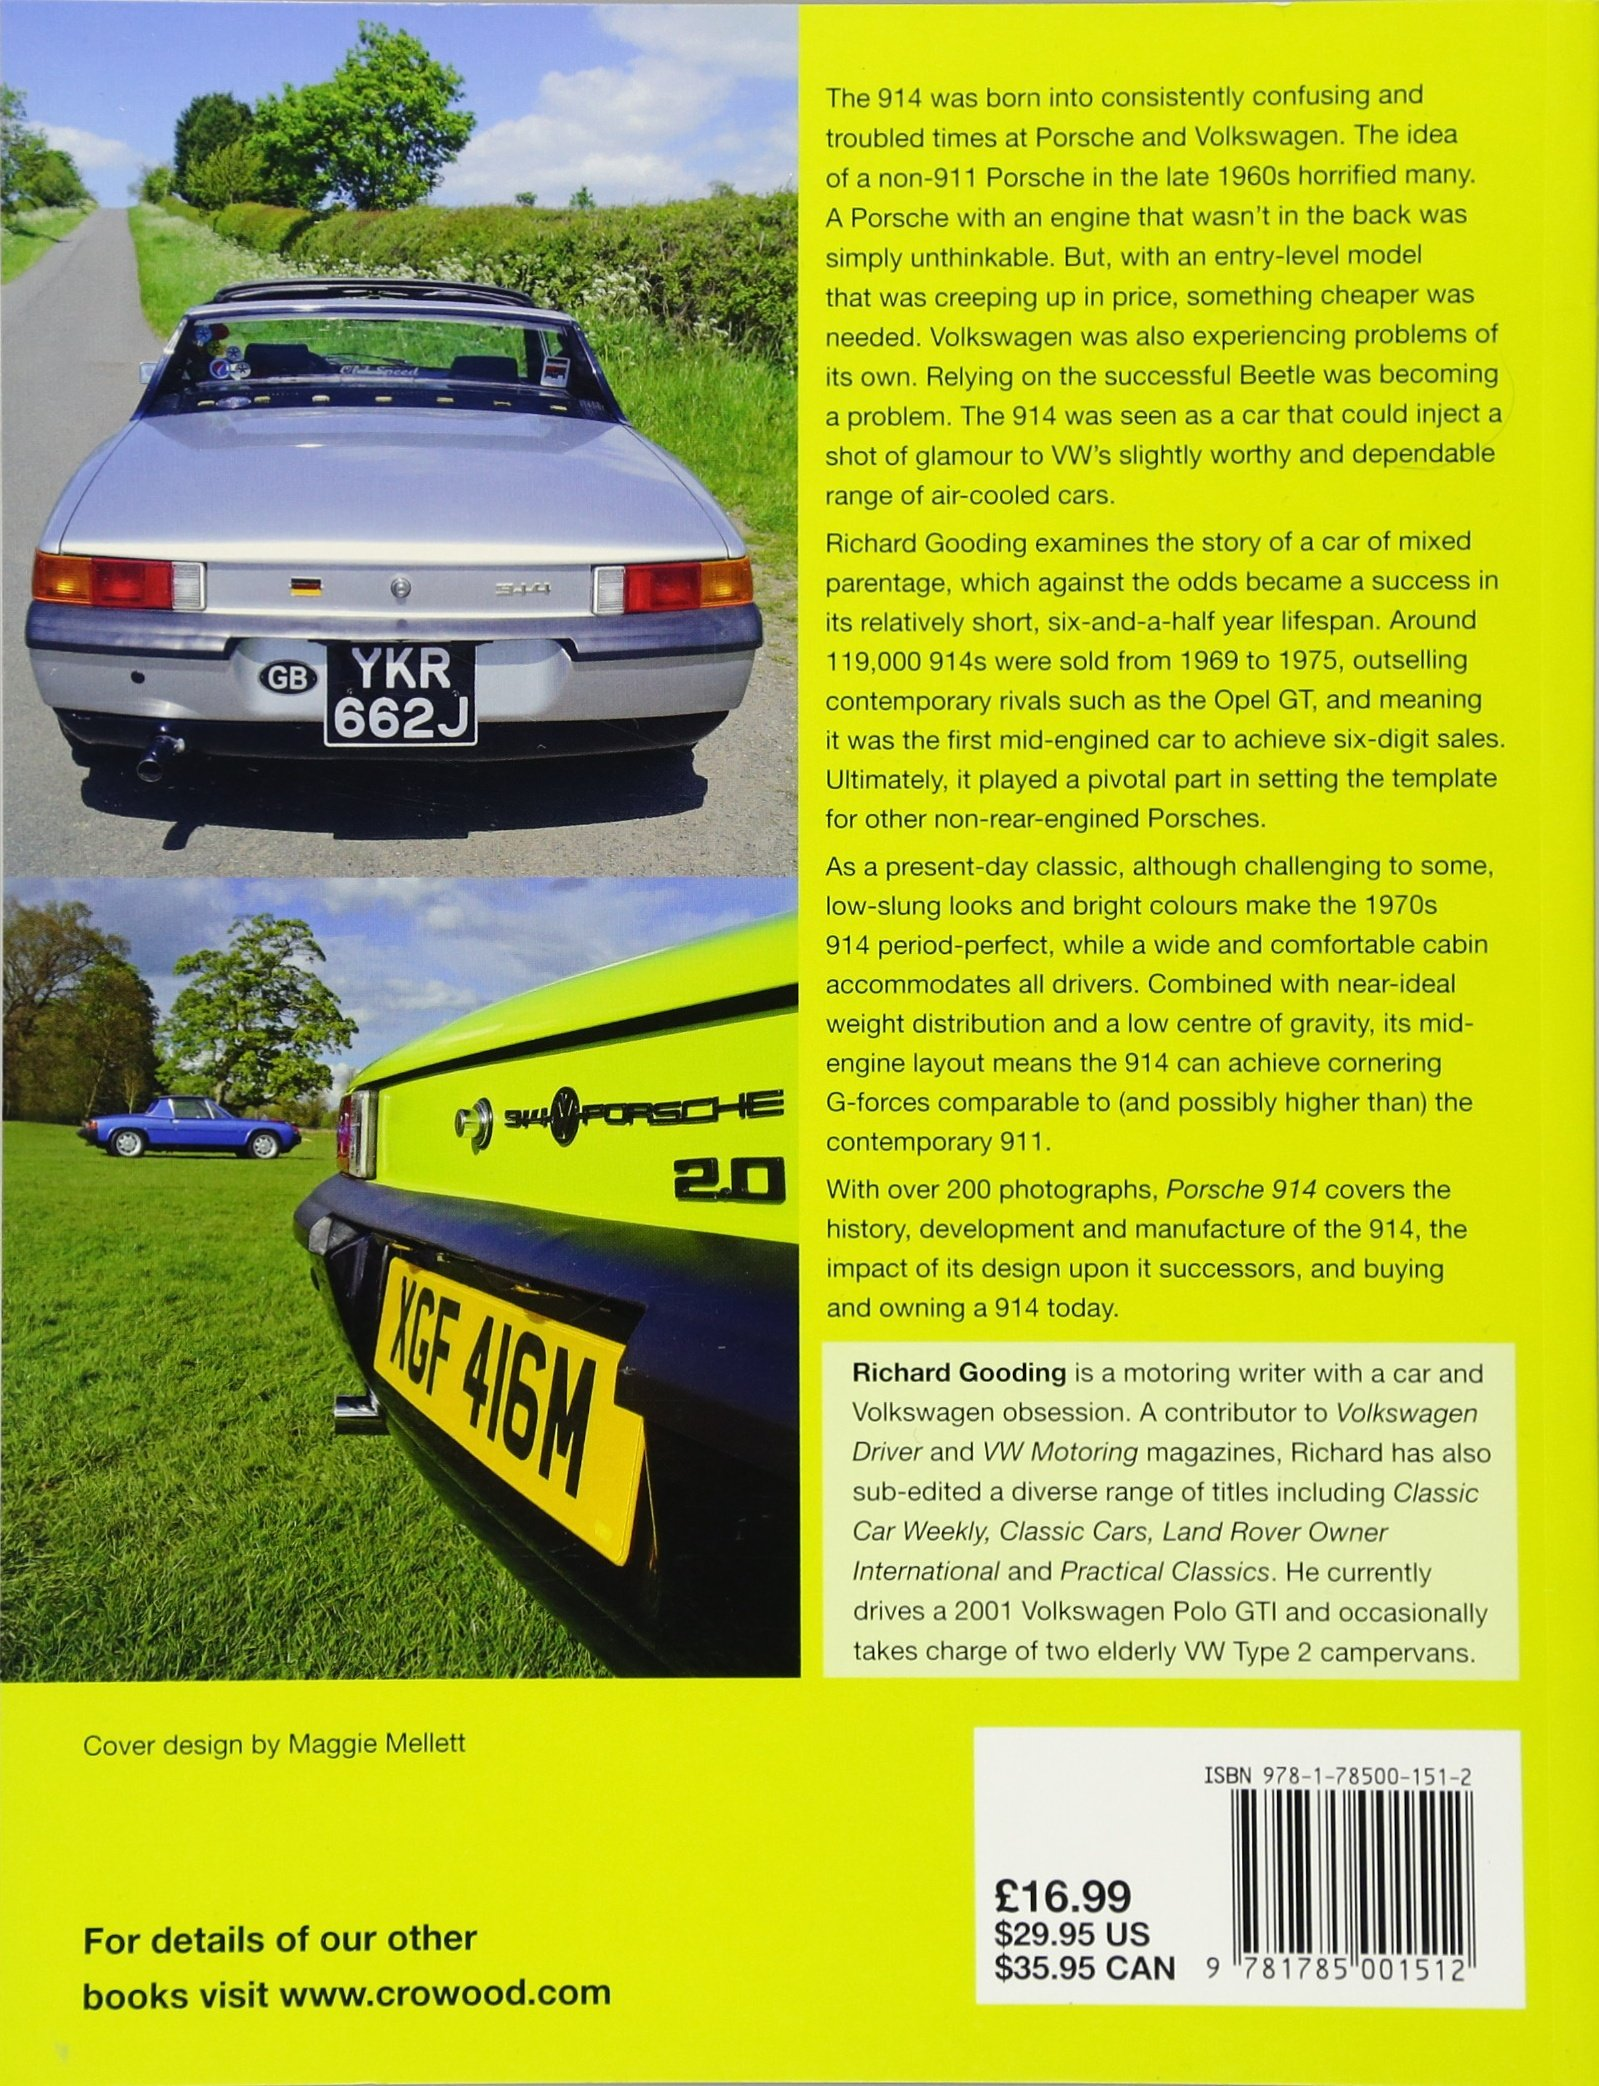 Porsche 914 an enthusiasts guide richard gooding 9781785001512 porsche 914 an enthusiasts guide richard gooding 9781785001512 amazon books fandeluxe Images